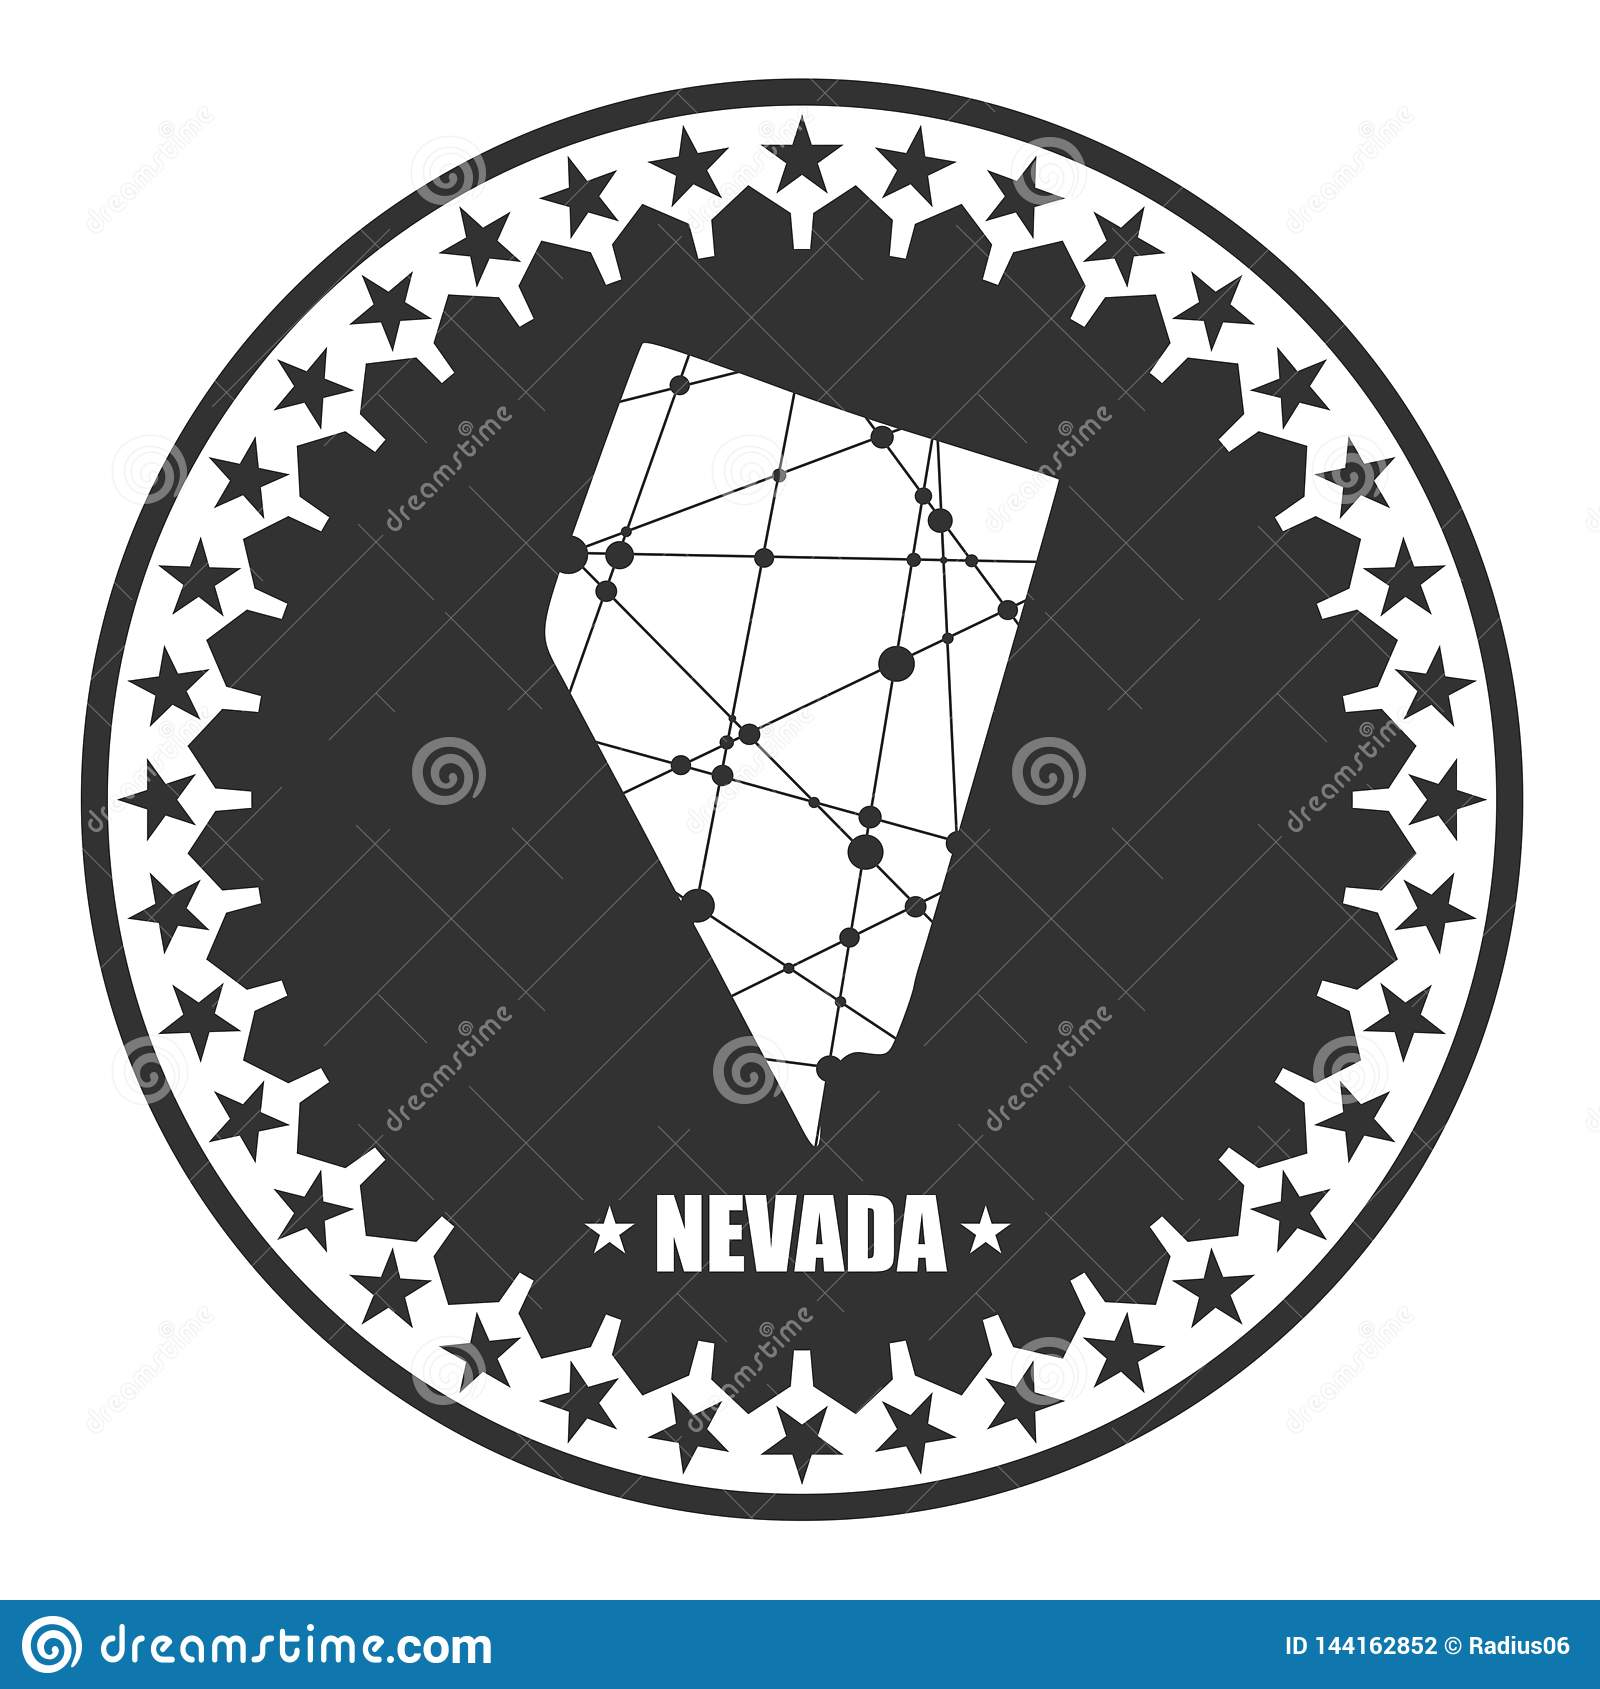 Nevada State Map Stock Vector Illustration Of Cartography 144162852